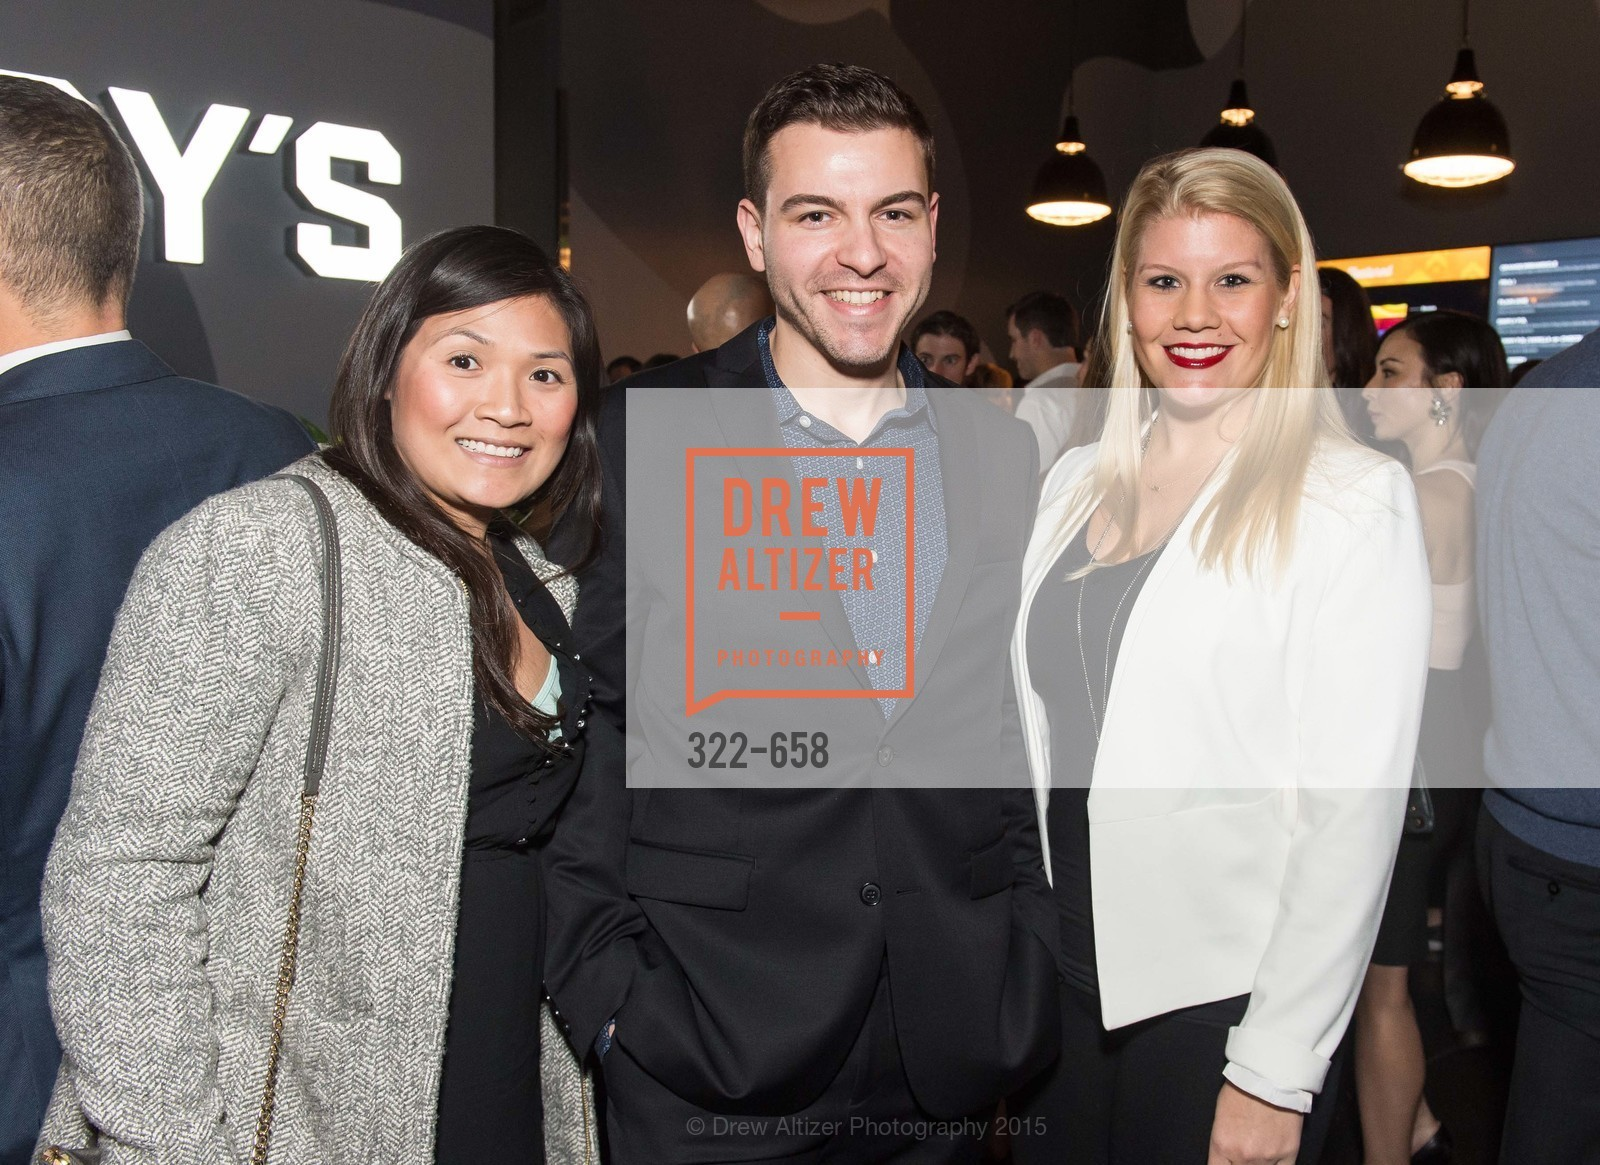 Maryann Nguyen, Say Abian, Laura Davis, Barry's Marina Opening, Barry's. 2246 Lombard Street, December 17th, 2015,Drew Altizer, Drew Altizer Photography, full-service agency, private events, San Francisco photographer, photographer california